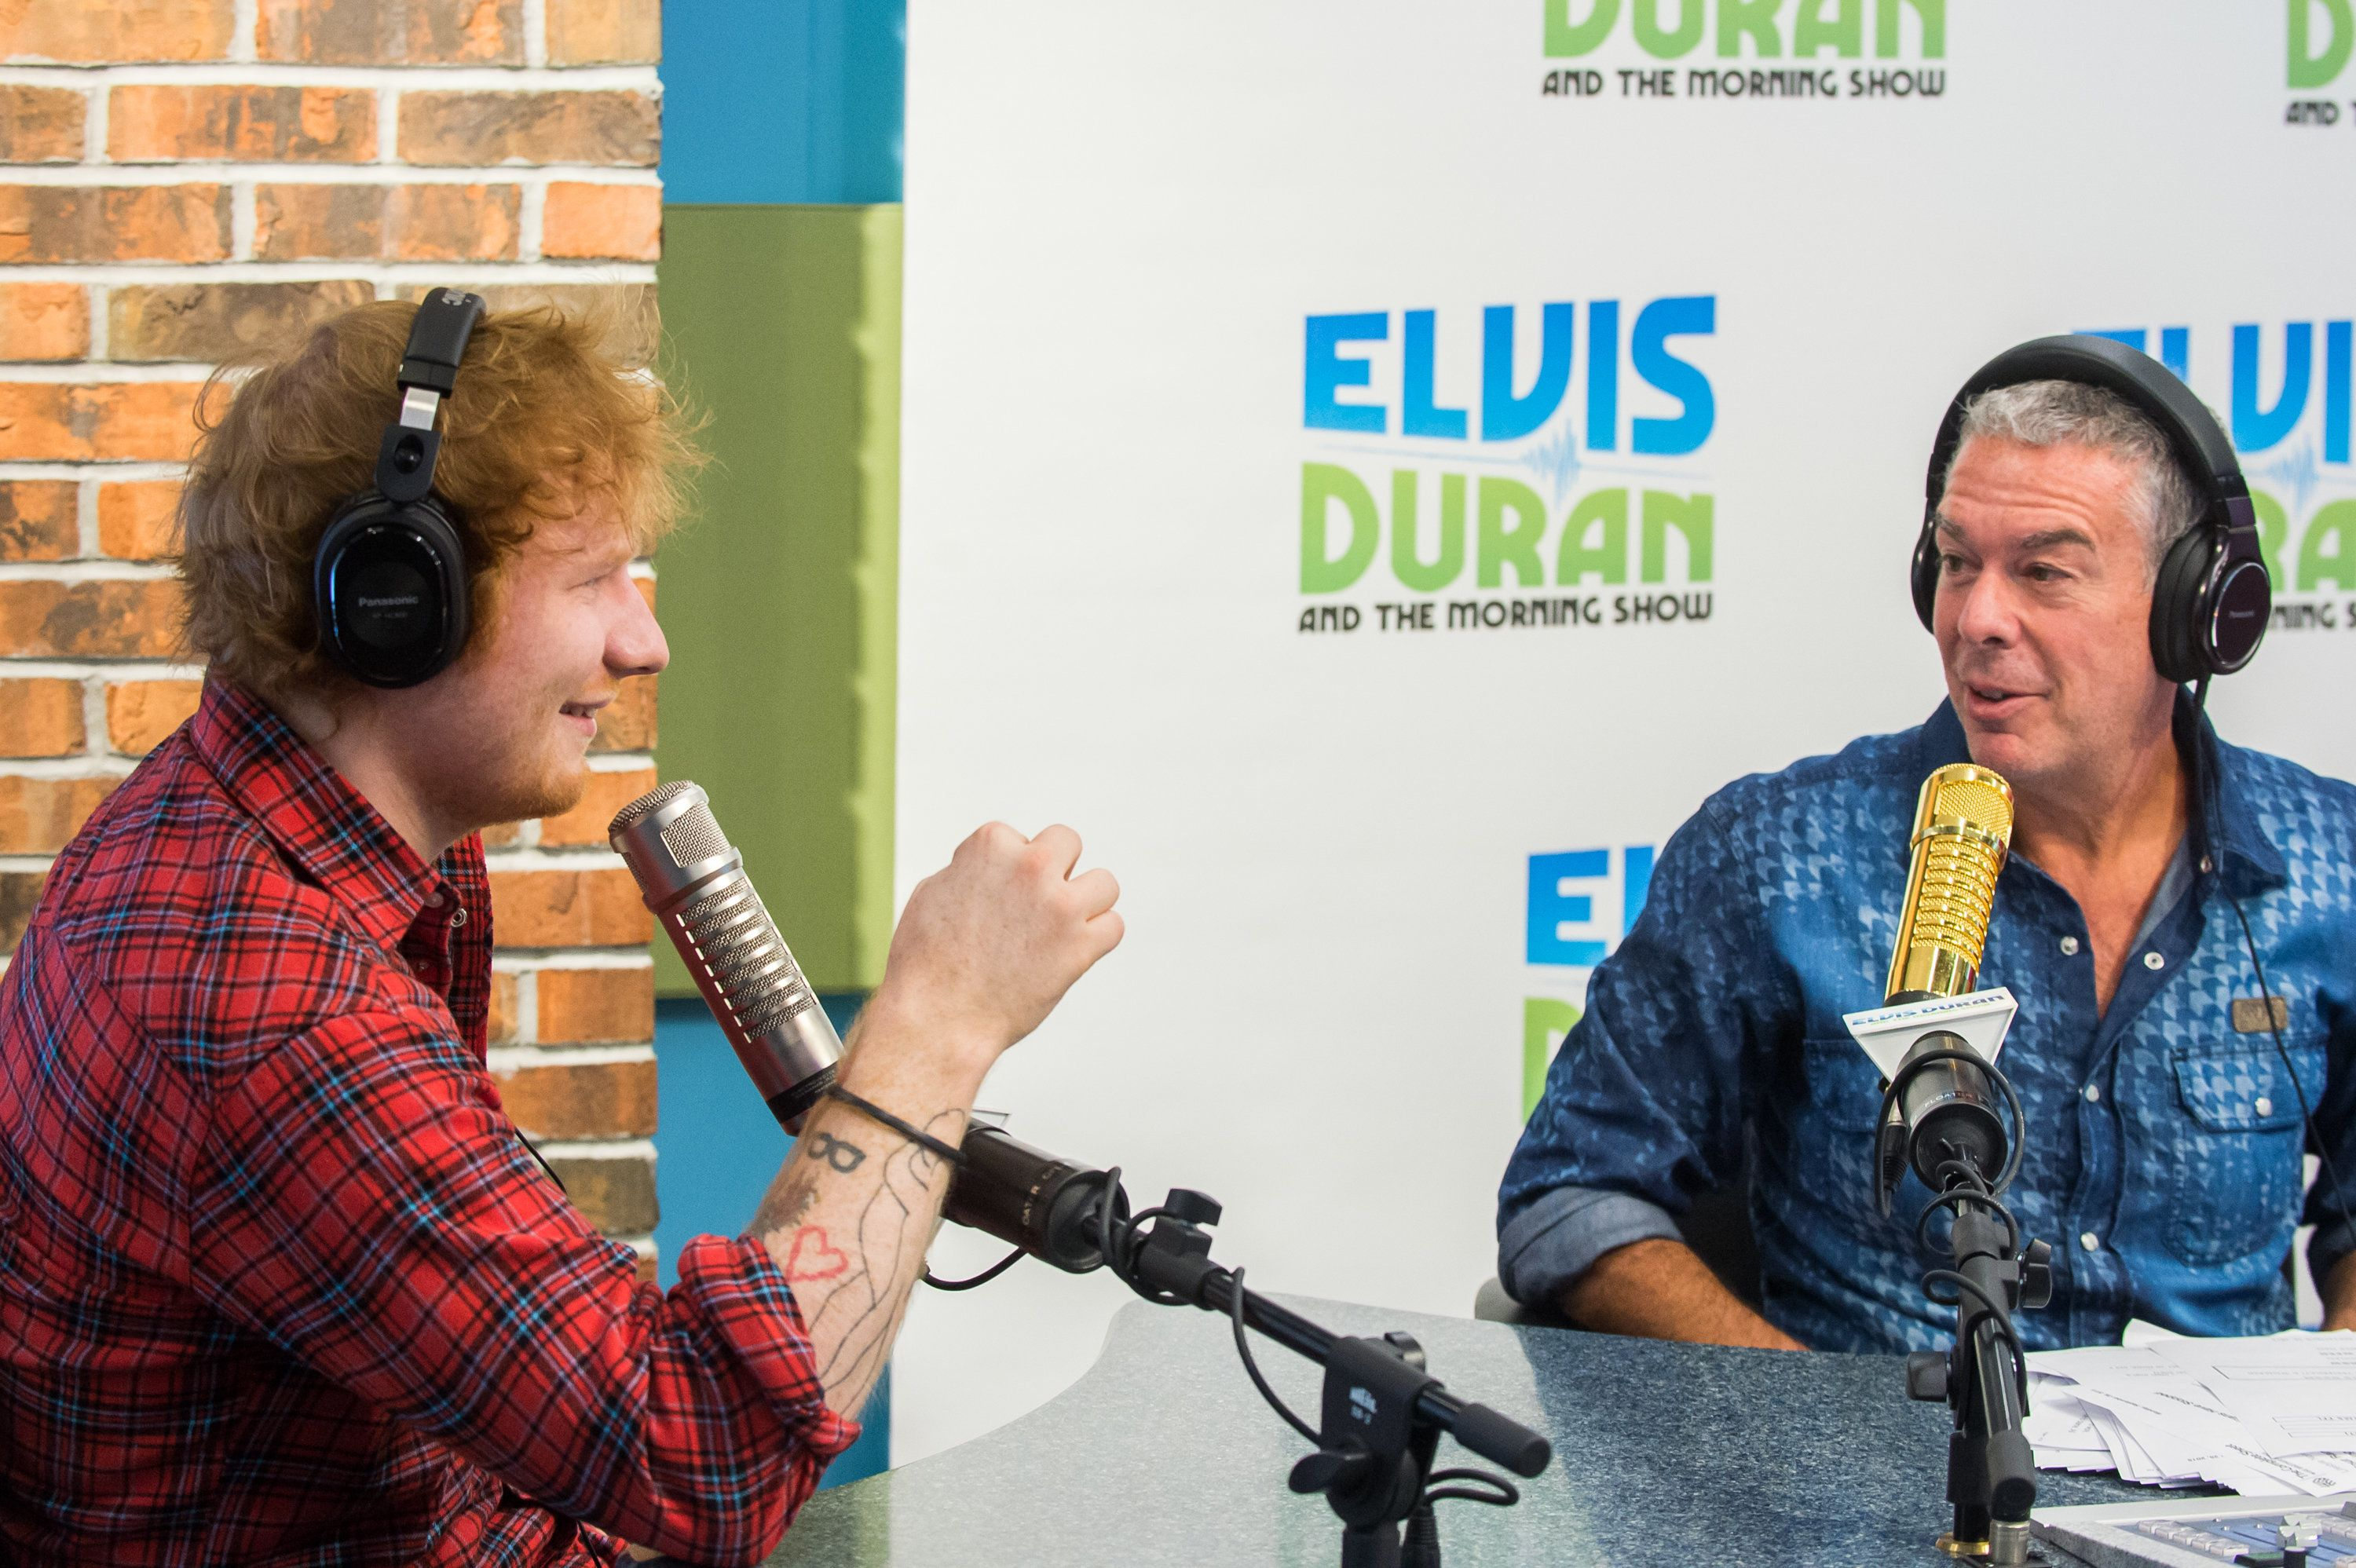 NEW YORK, NY - SEPTEMBER 28:  Singer Ed Sheeran (L) and Radio Host Elvis Duran attend 'The Elvis Duran Z100 Morning Show' at Z100 Studio on September 28, 2015 in New York City.  (Photo by Mark Sagliocco/Getty Images)